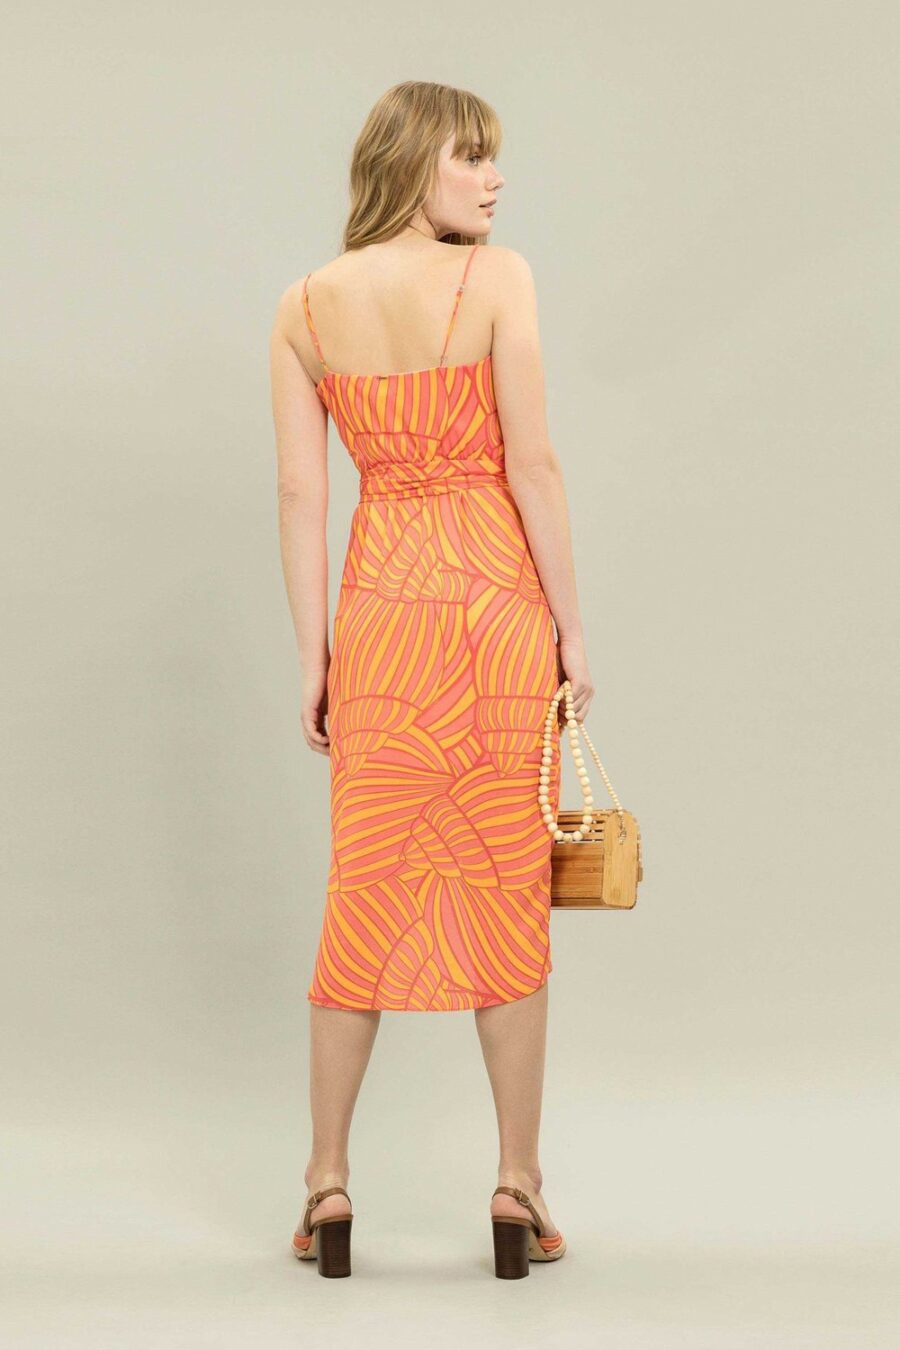 """Lit Afternoon"" Midi Dress by Lez a Lez"